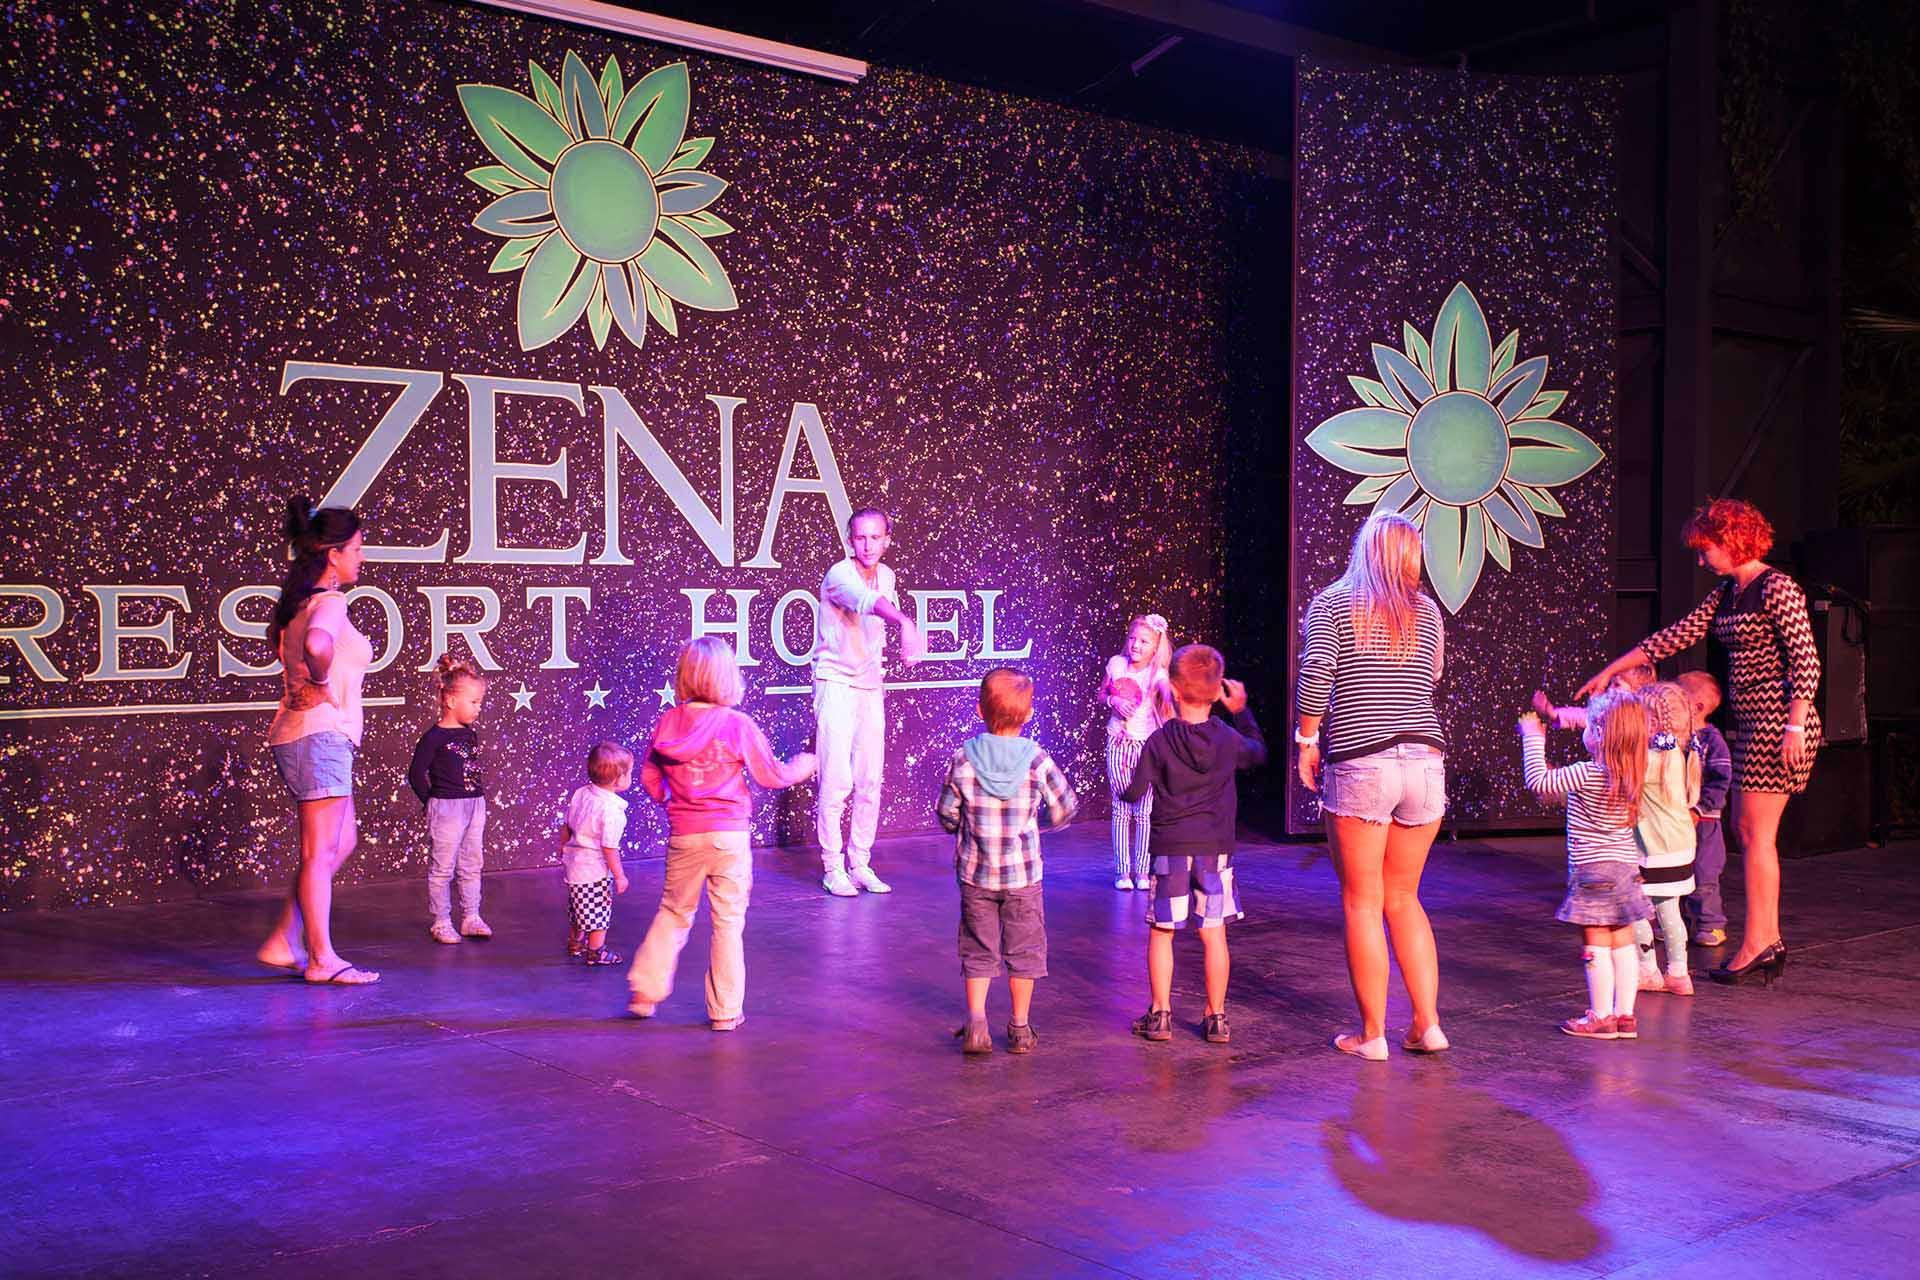 Zena Resort Mini Clup